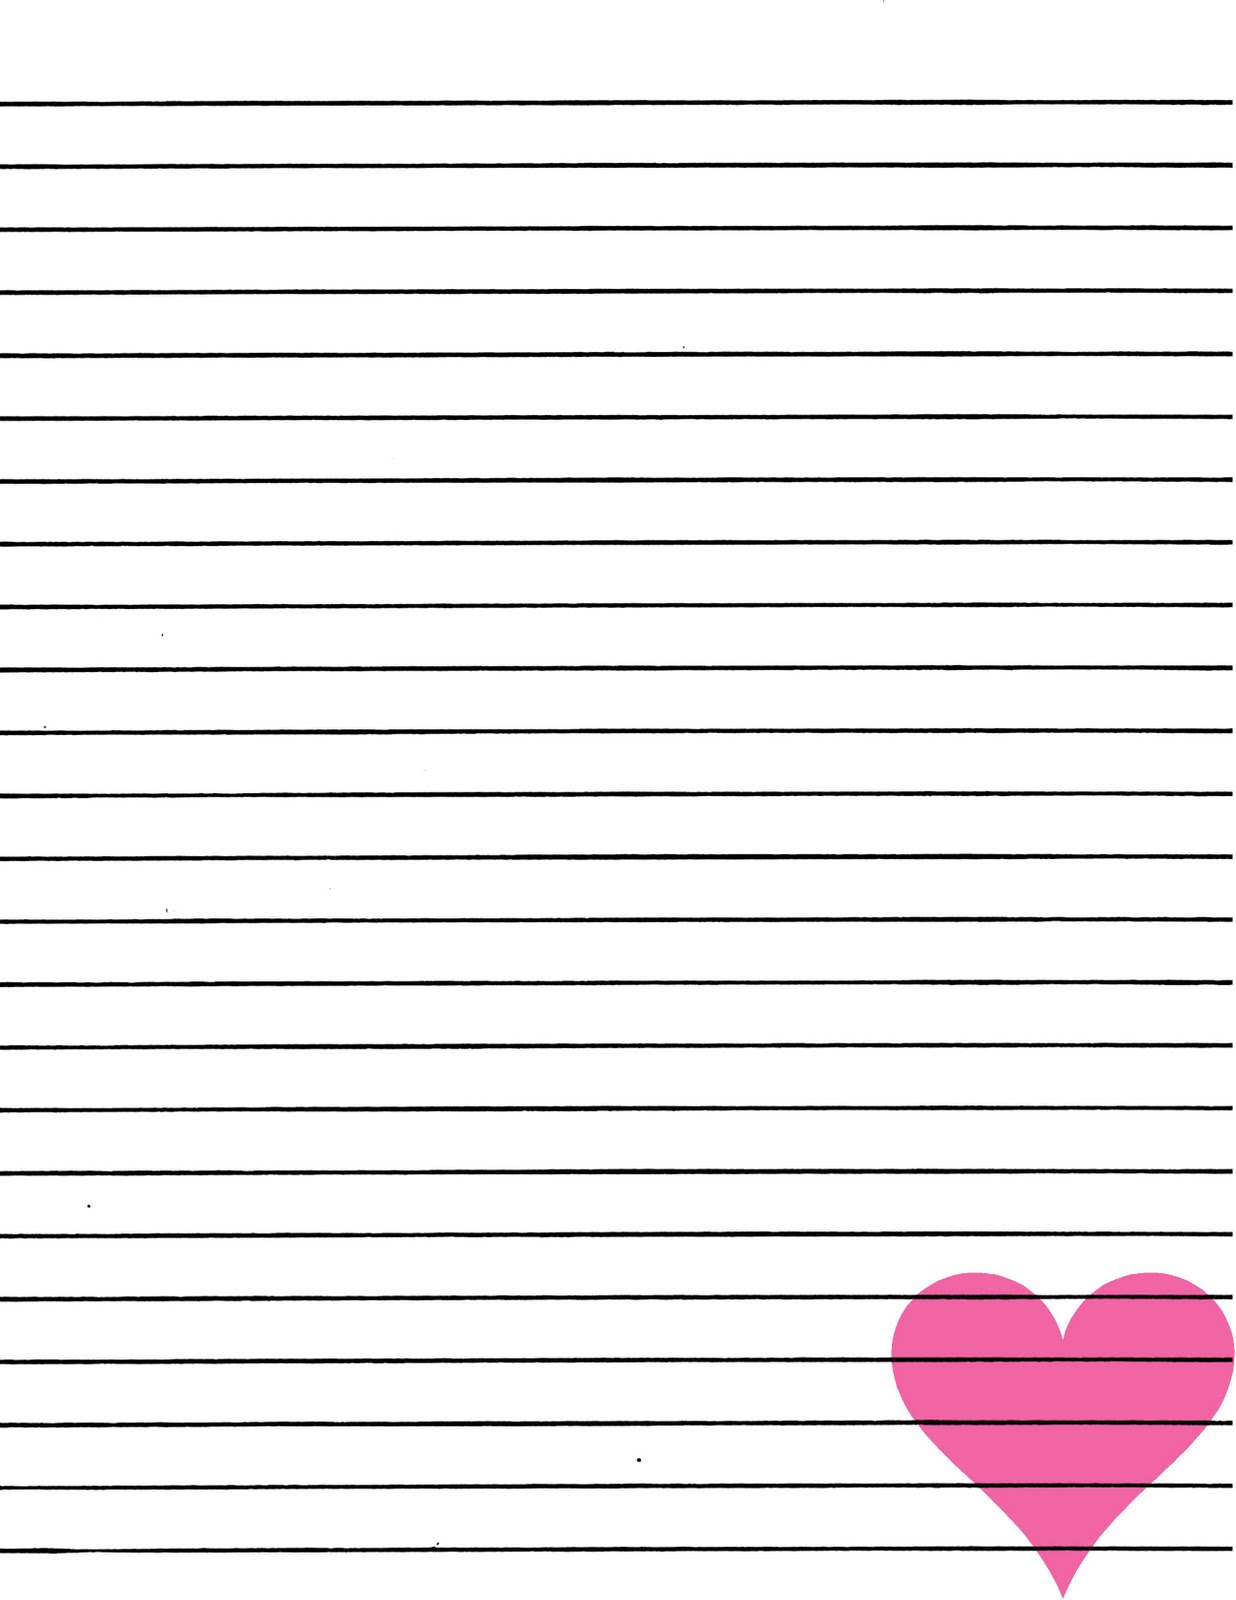 Notebook Paper Template For Printing – Lined Notebook Paper Template